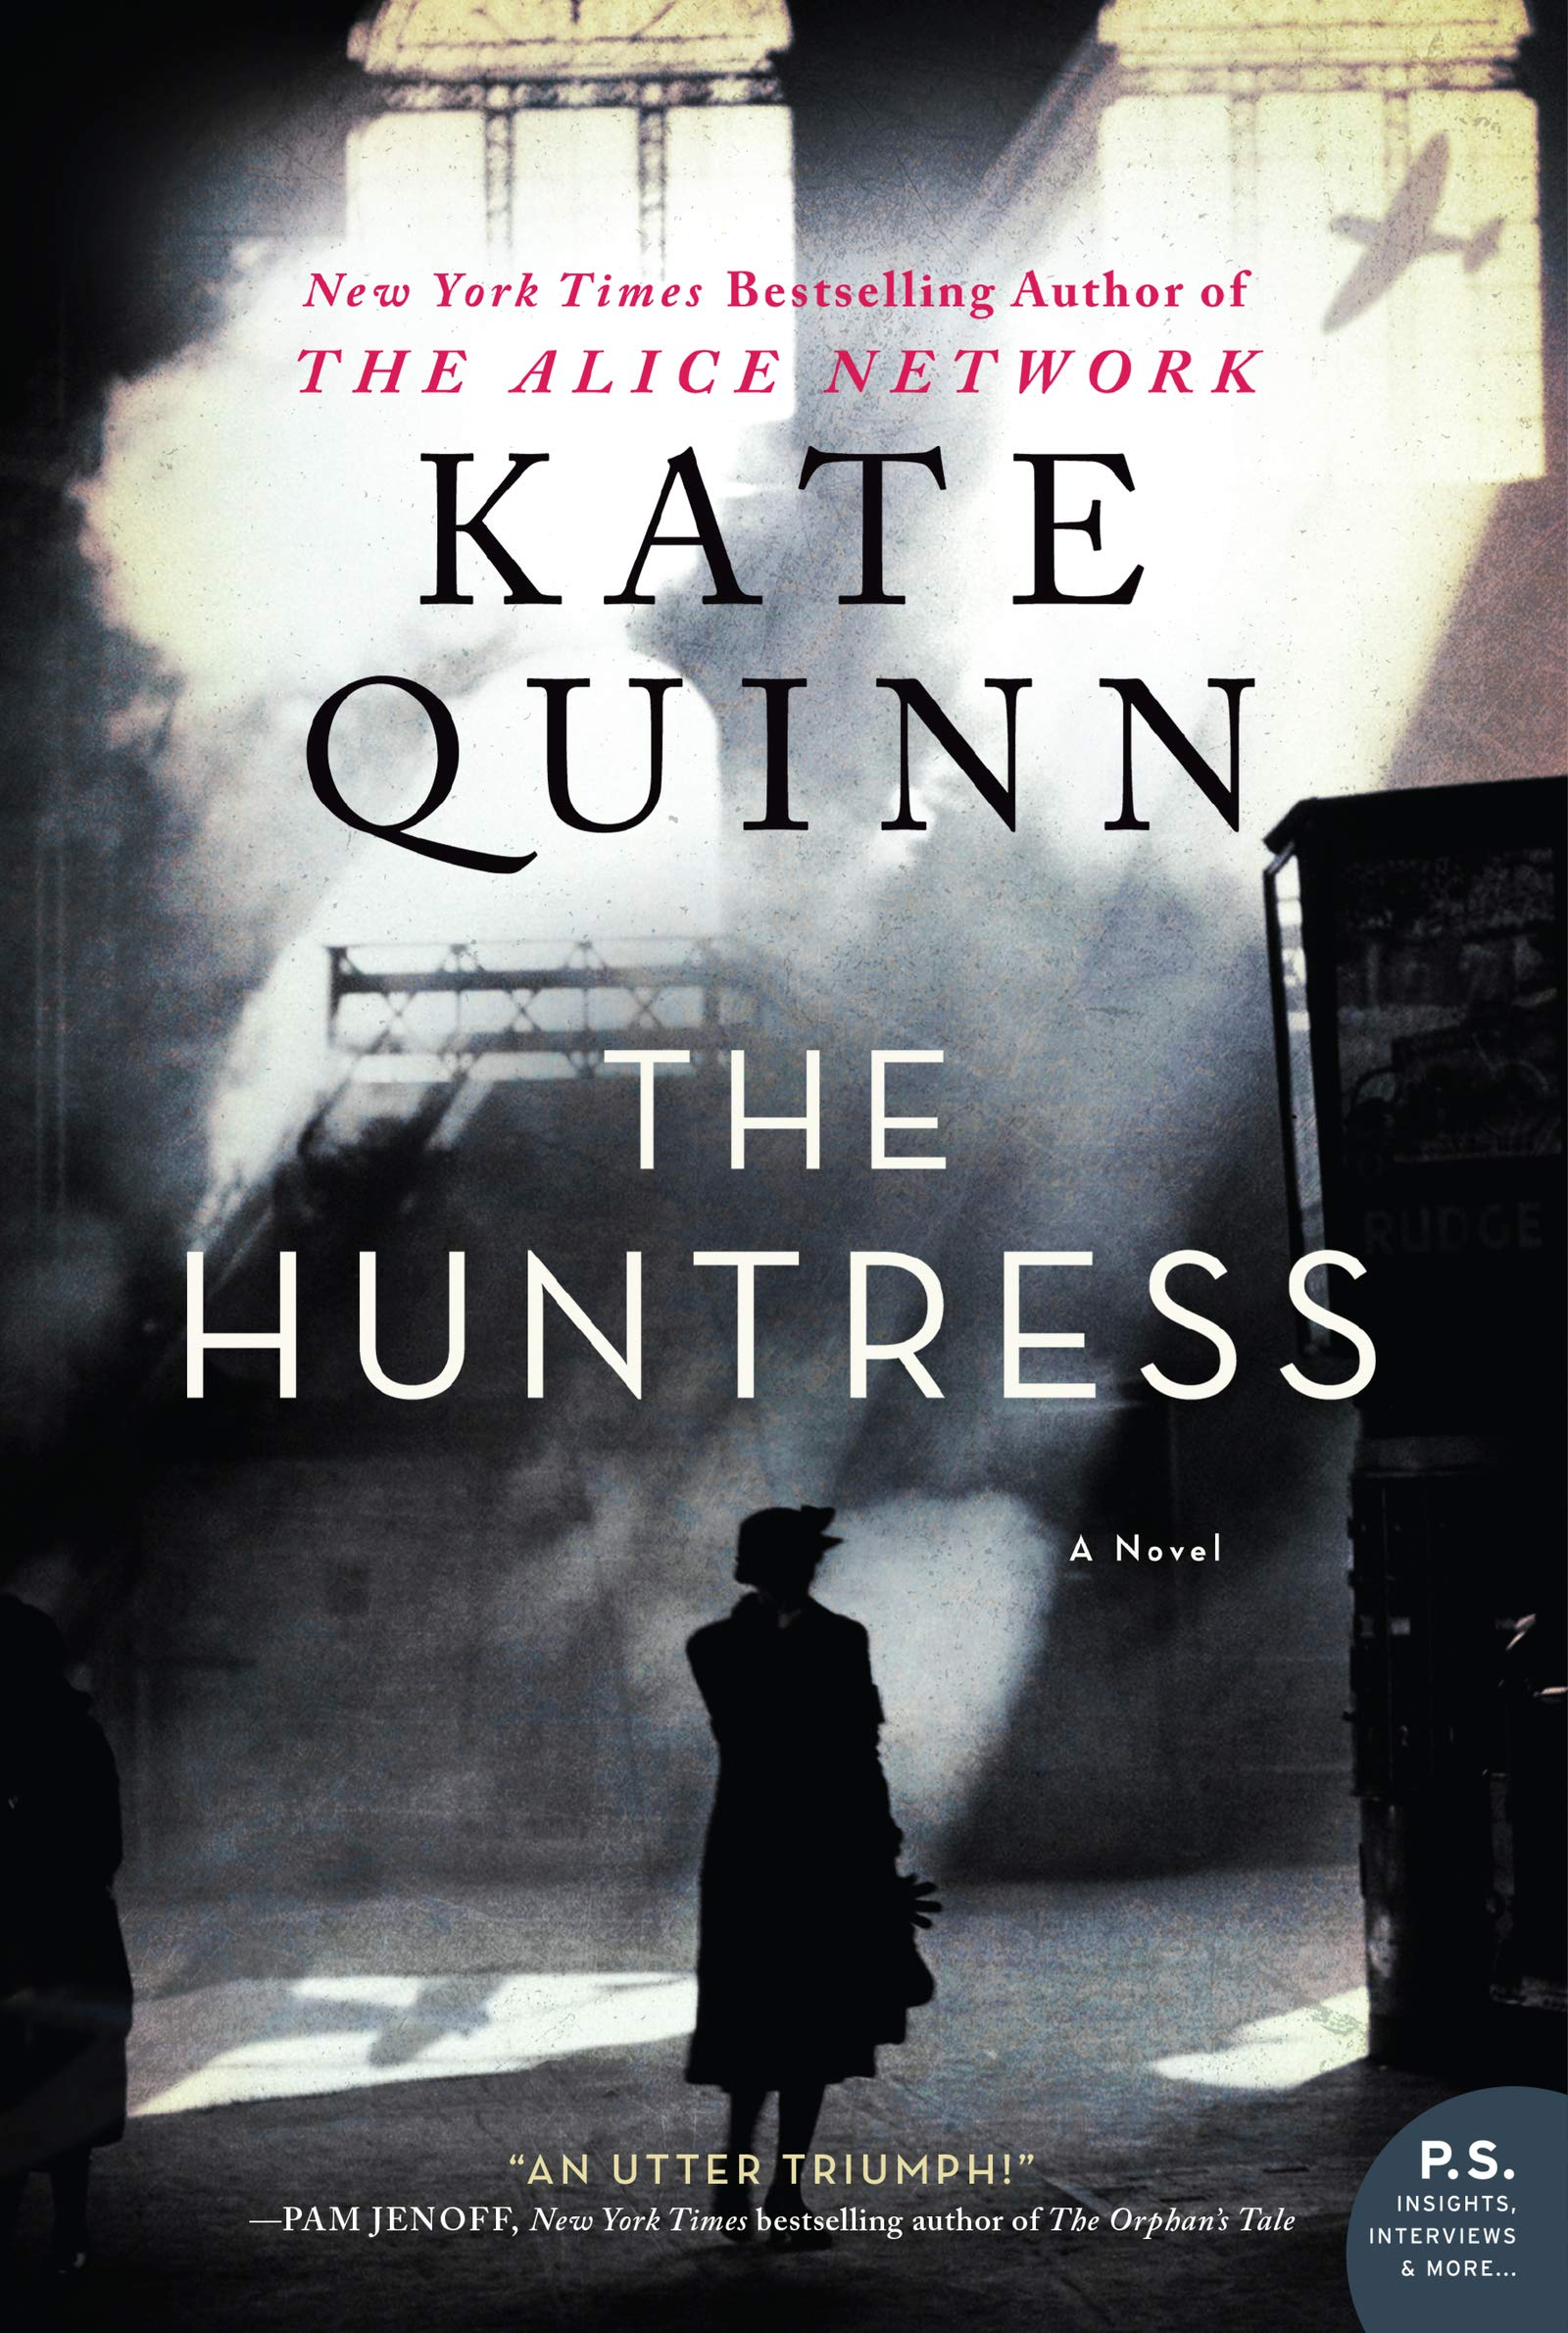 Image result for the huntress kate quinn